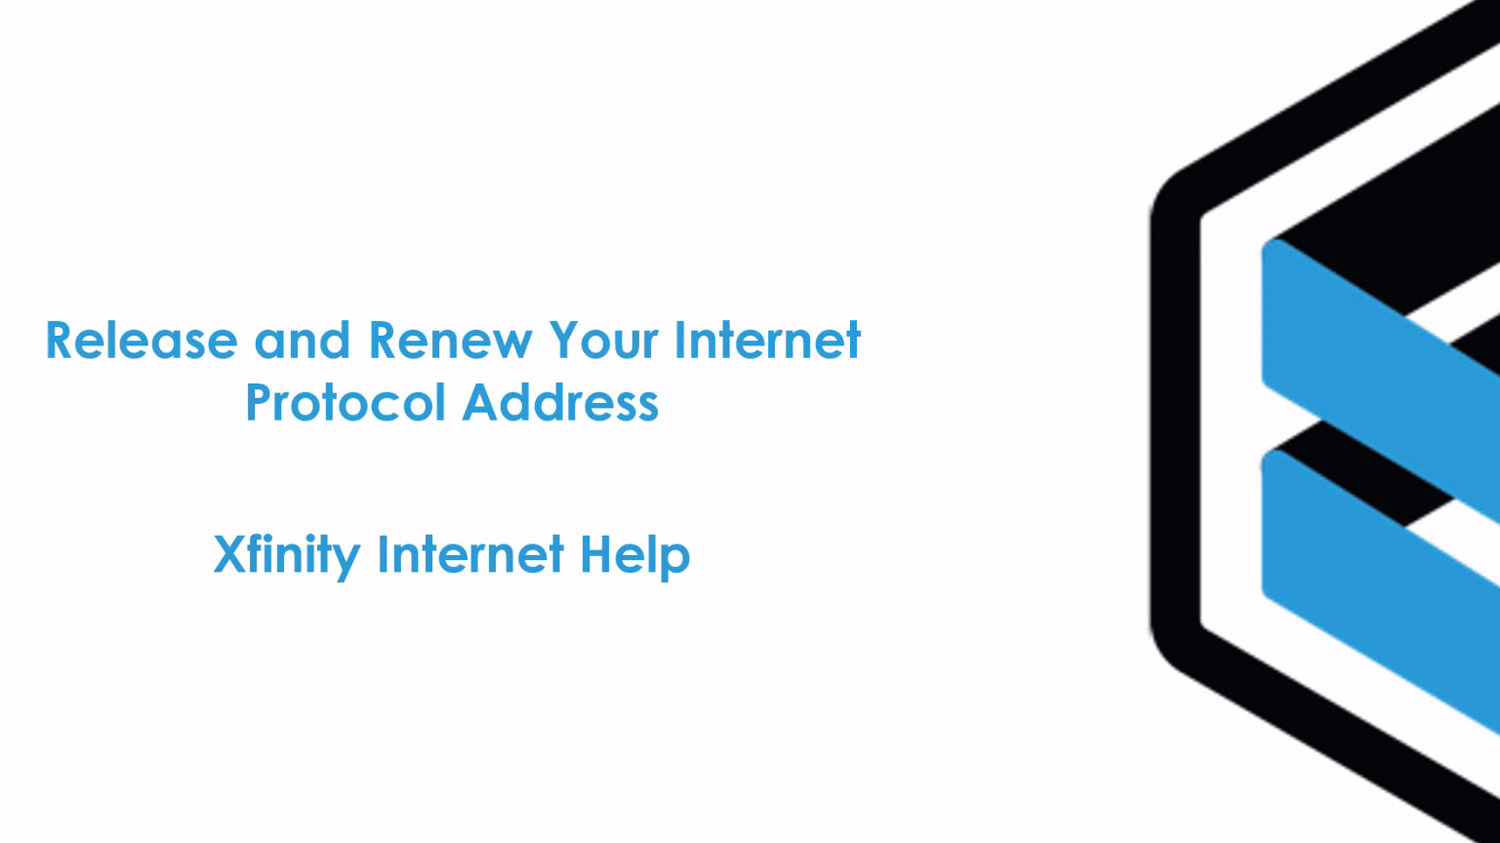 Release and Renew Your Internet Protocol Address